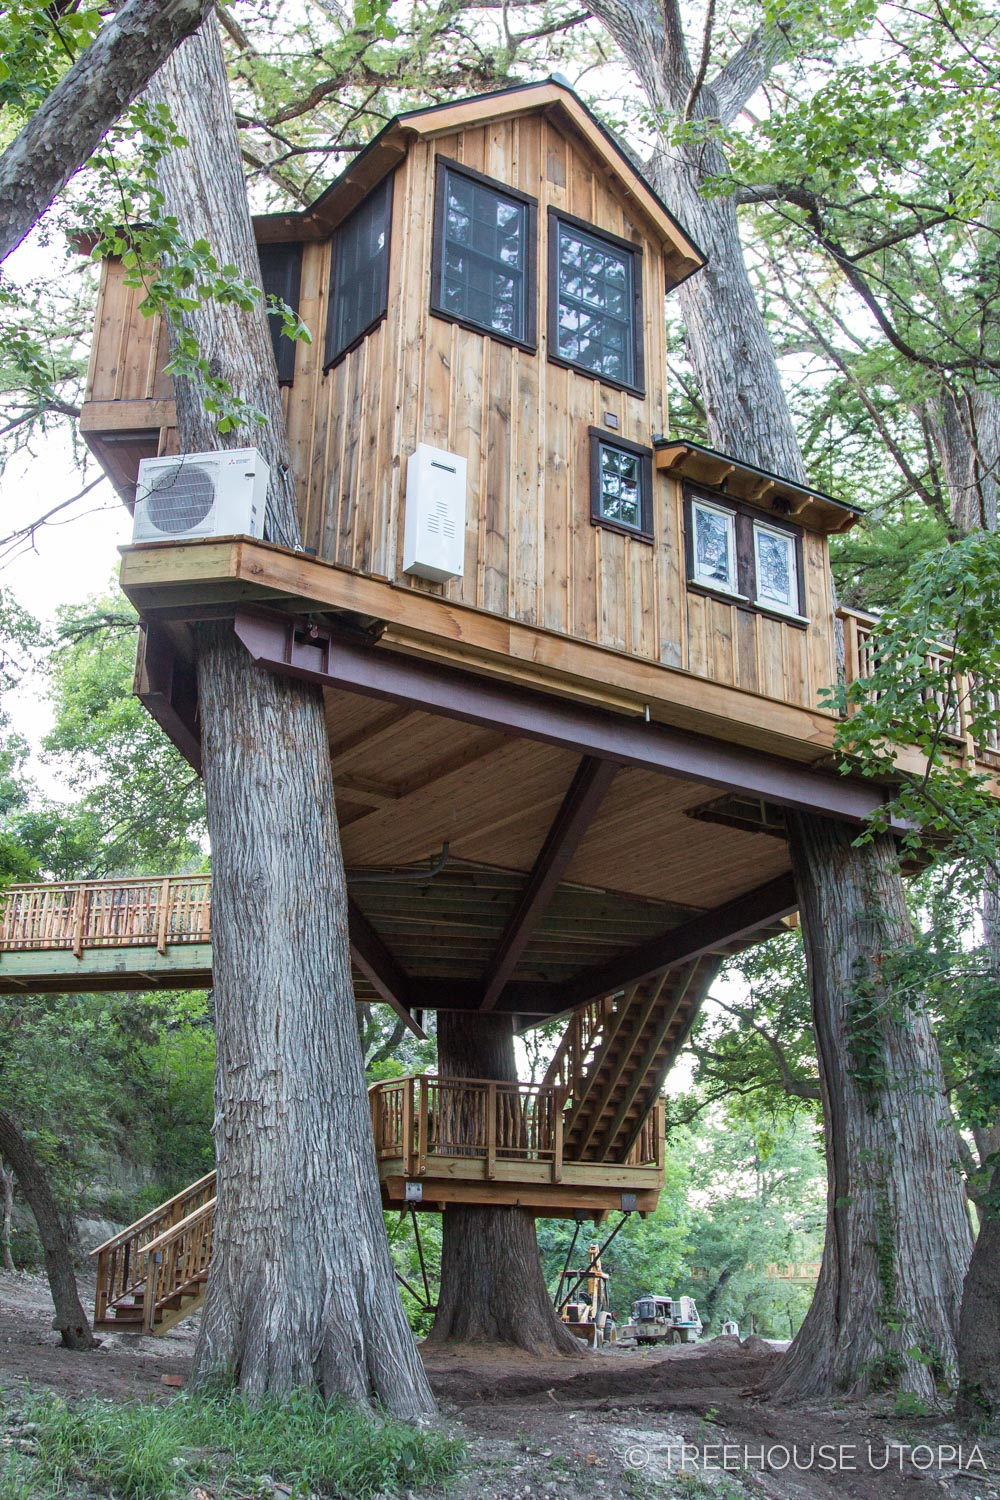 Chateau_Treehouse_Utopia_20183674.jpg